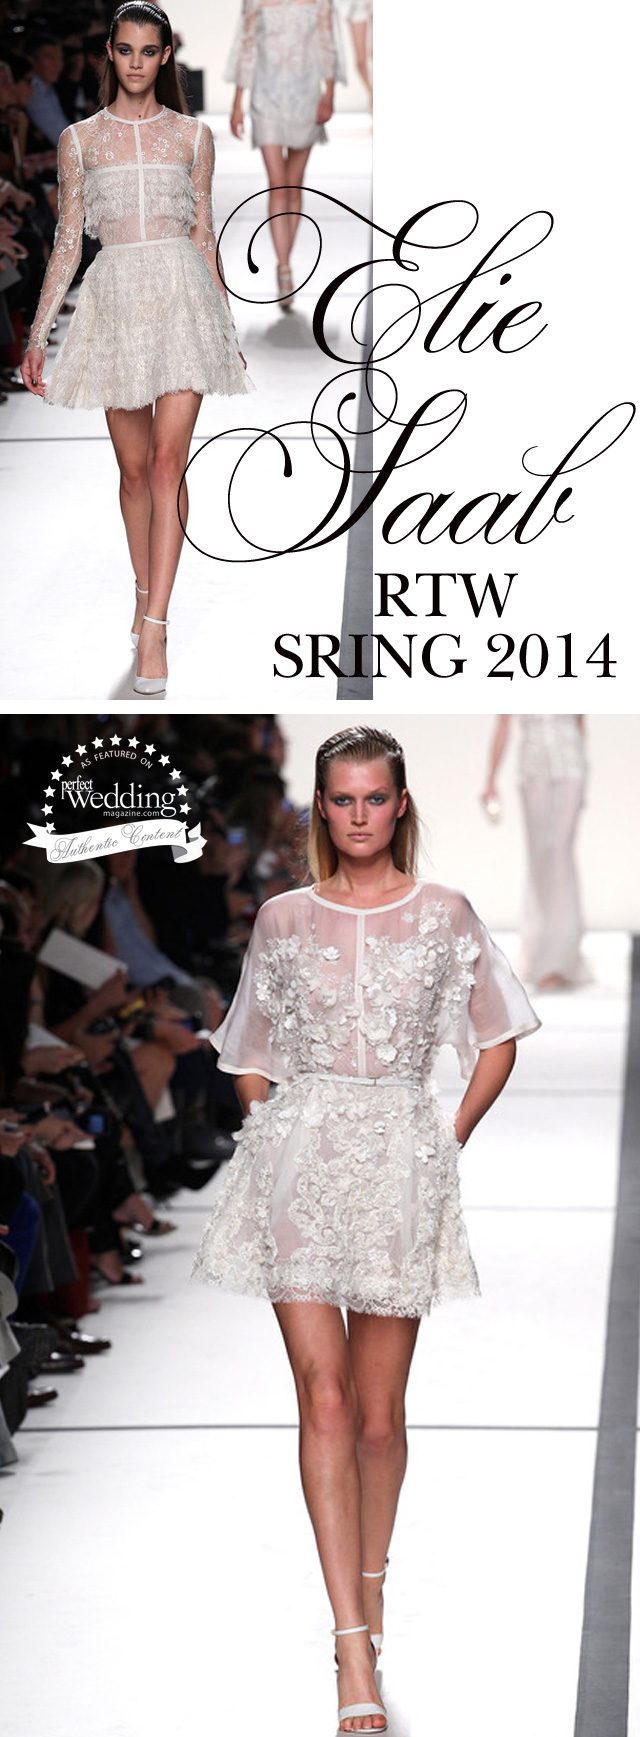 Elie Saab RTW Spring 2014, Perfect Wedding Magazine blog, Lace Gowns